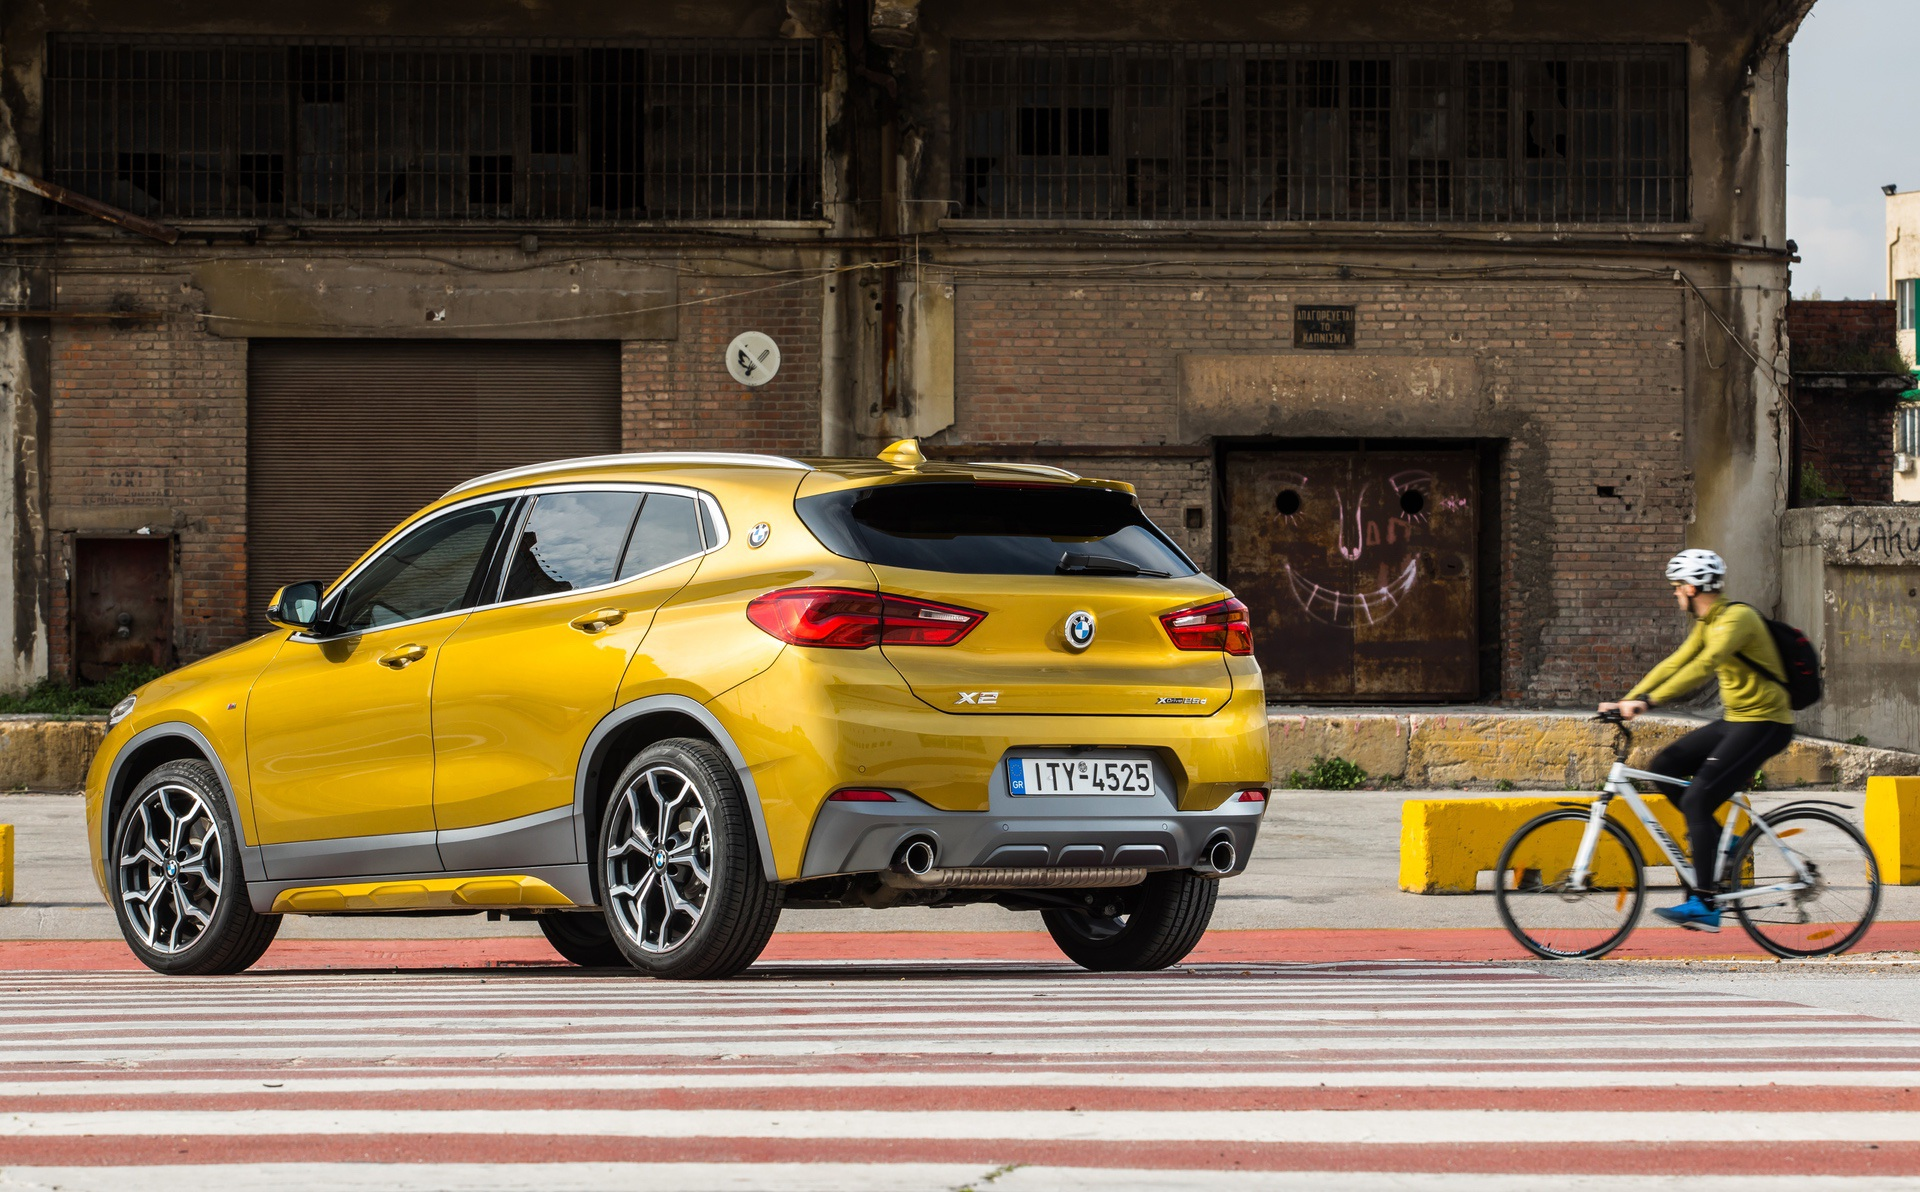 BMW_X2_Greek_presskit_0083